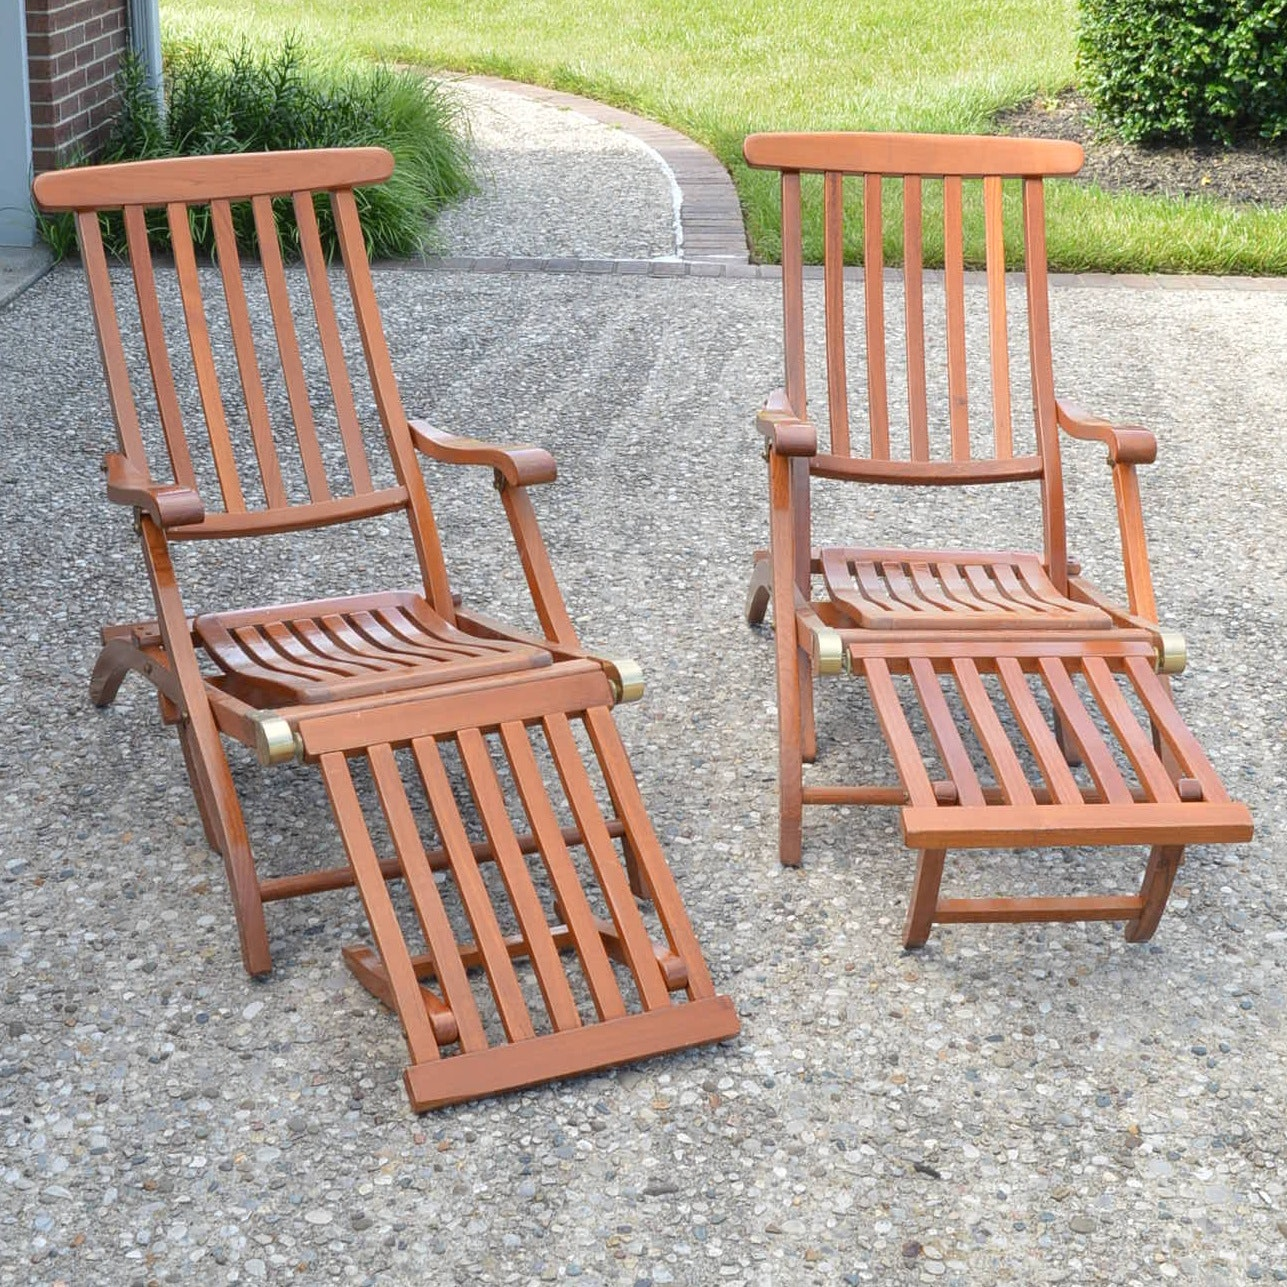 Pair of Outdoor Folding Chairs with Footrest